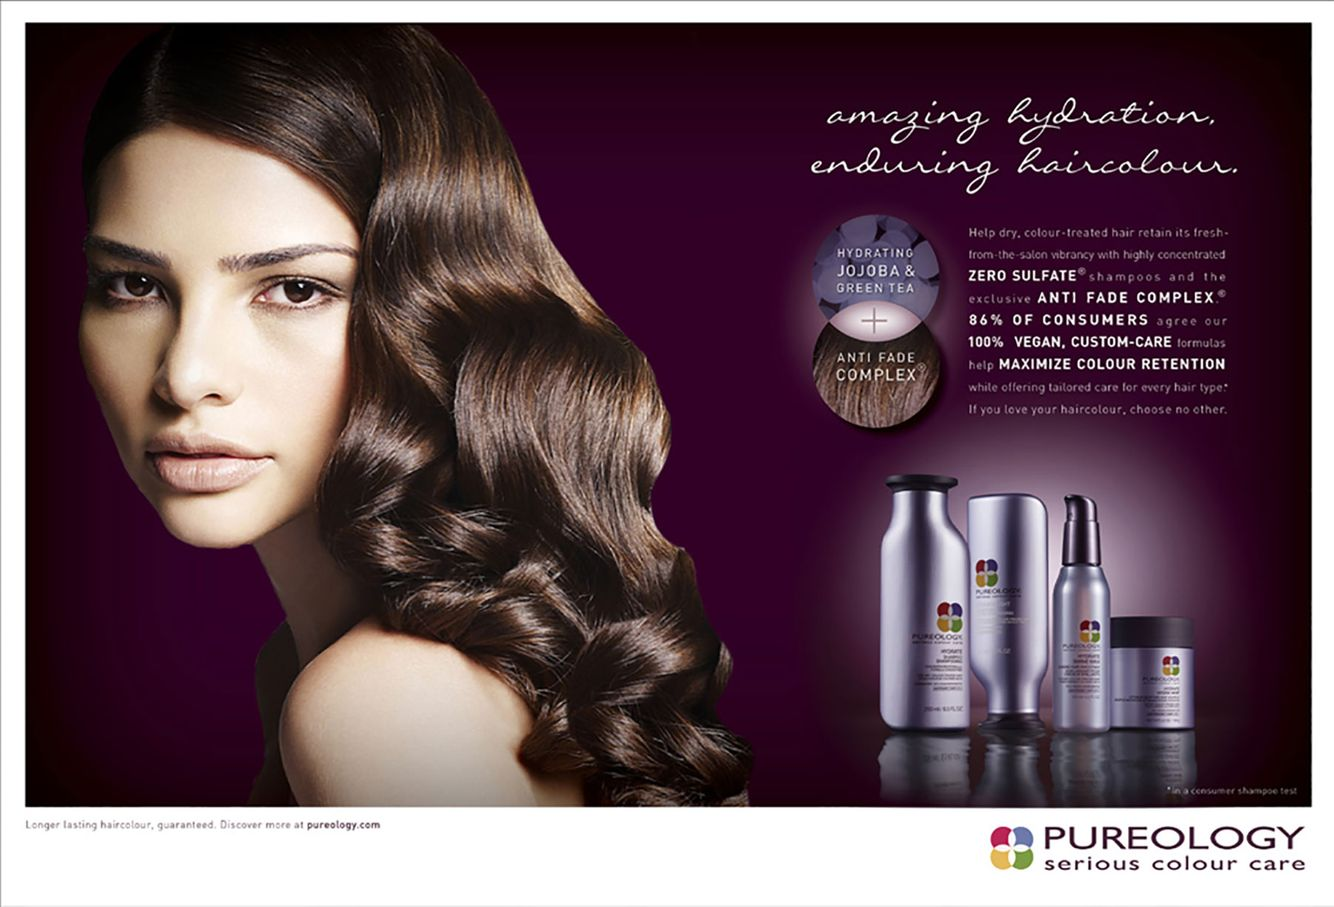 Pureology_Ads_SMM_02-2.jpg